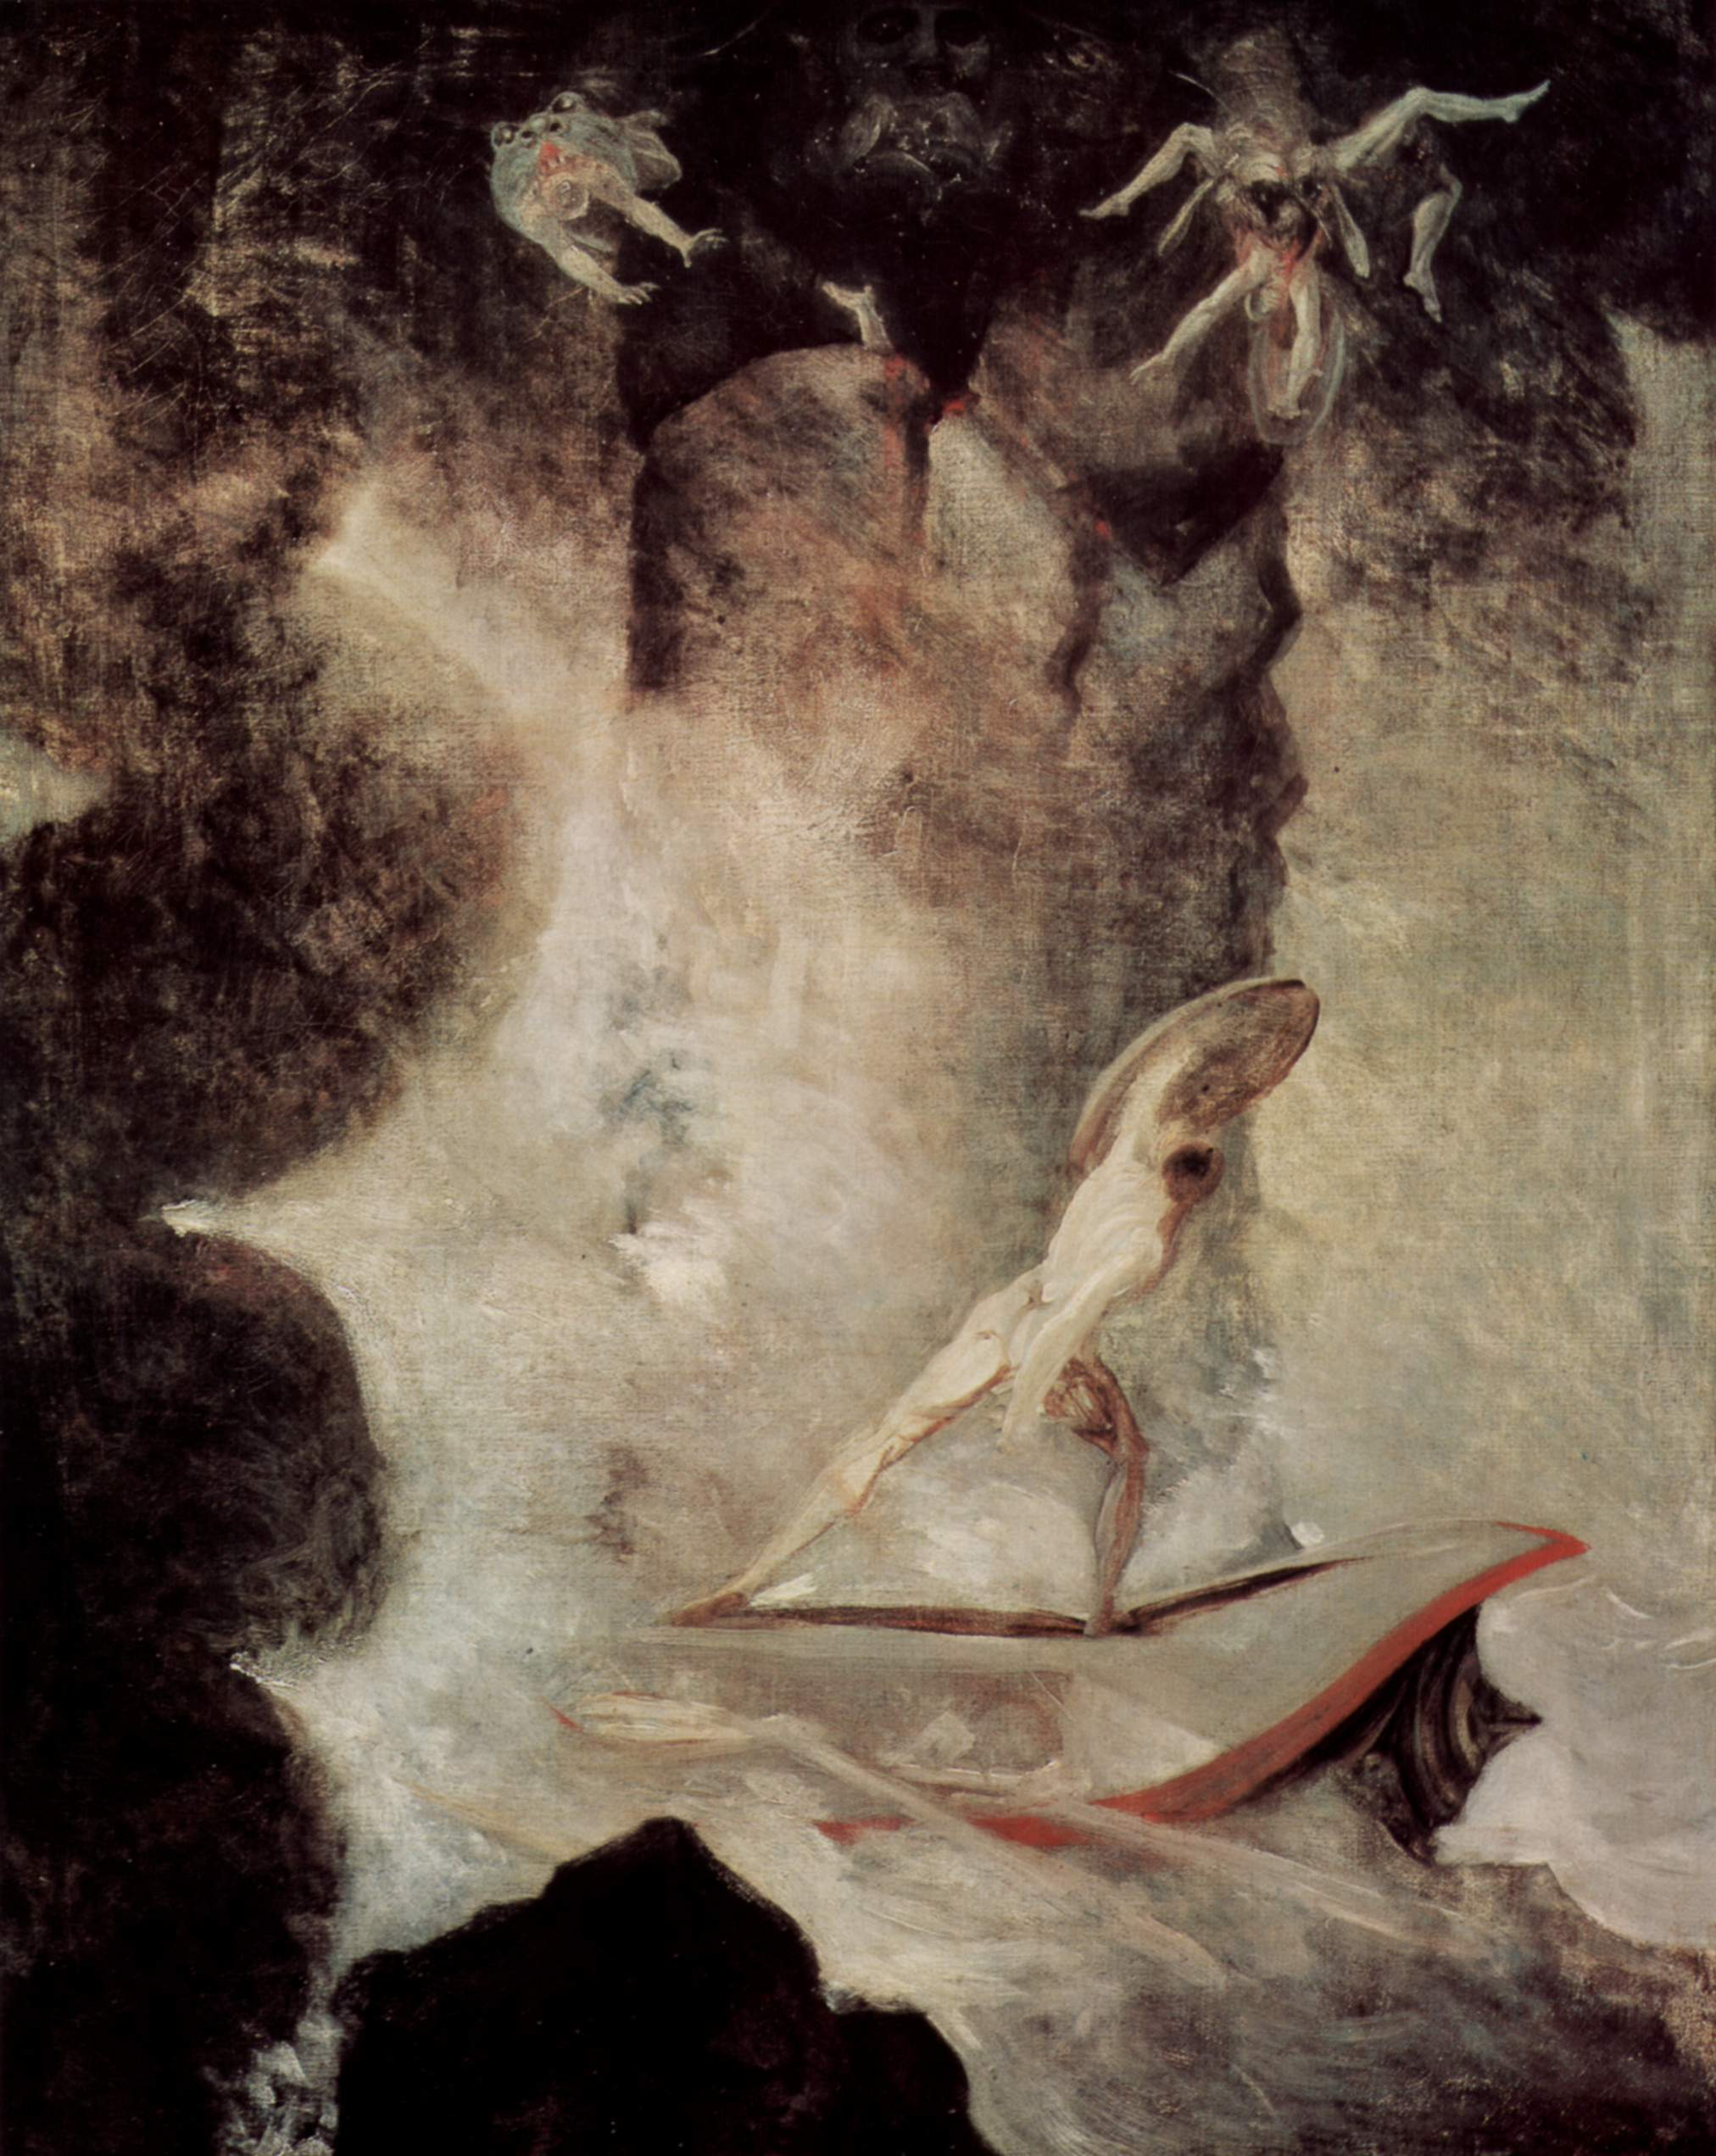 Scylla and Charybdis, 1794-6, by Fuseli